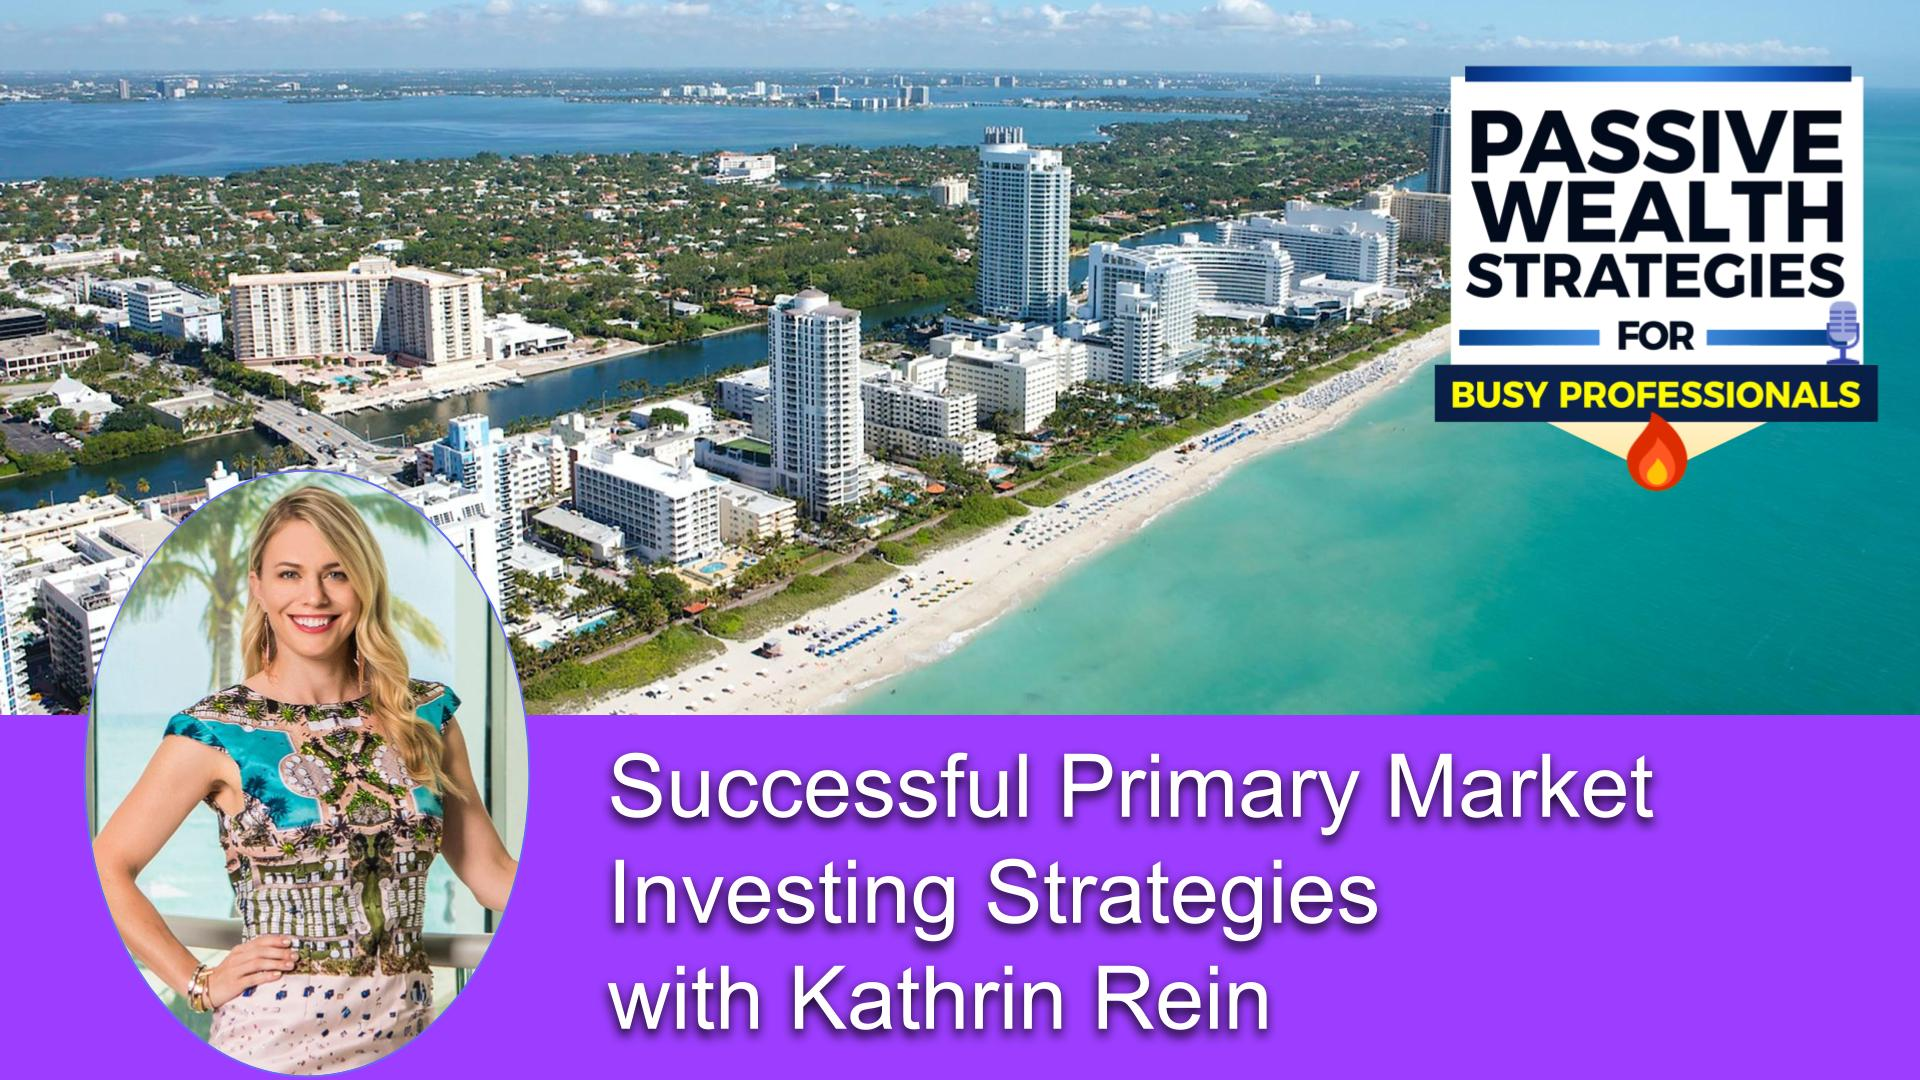 Successful Primary Market Investing Strategies with Kathrin Rein